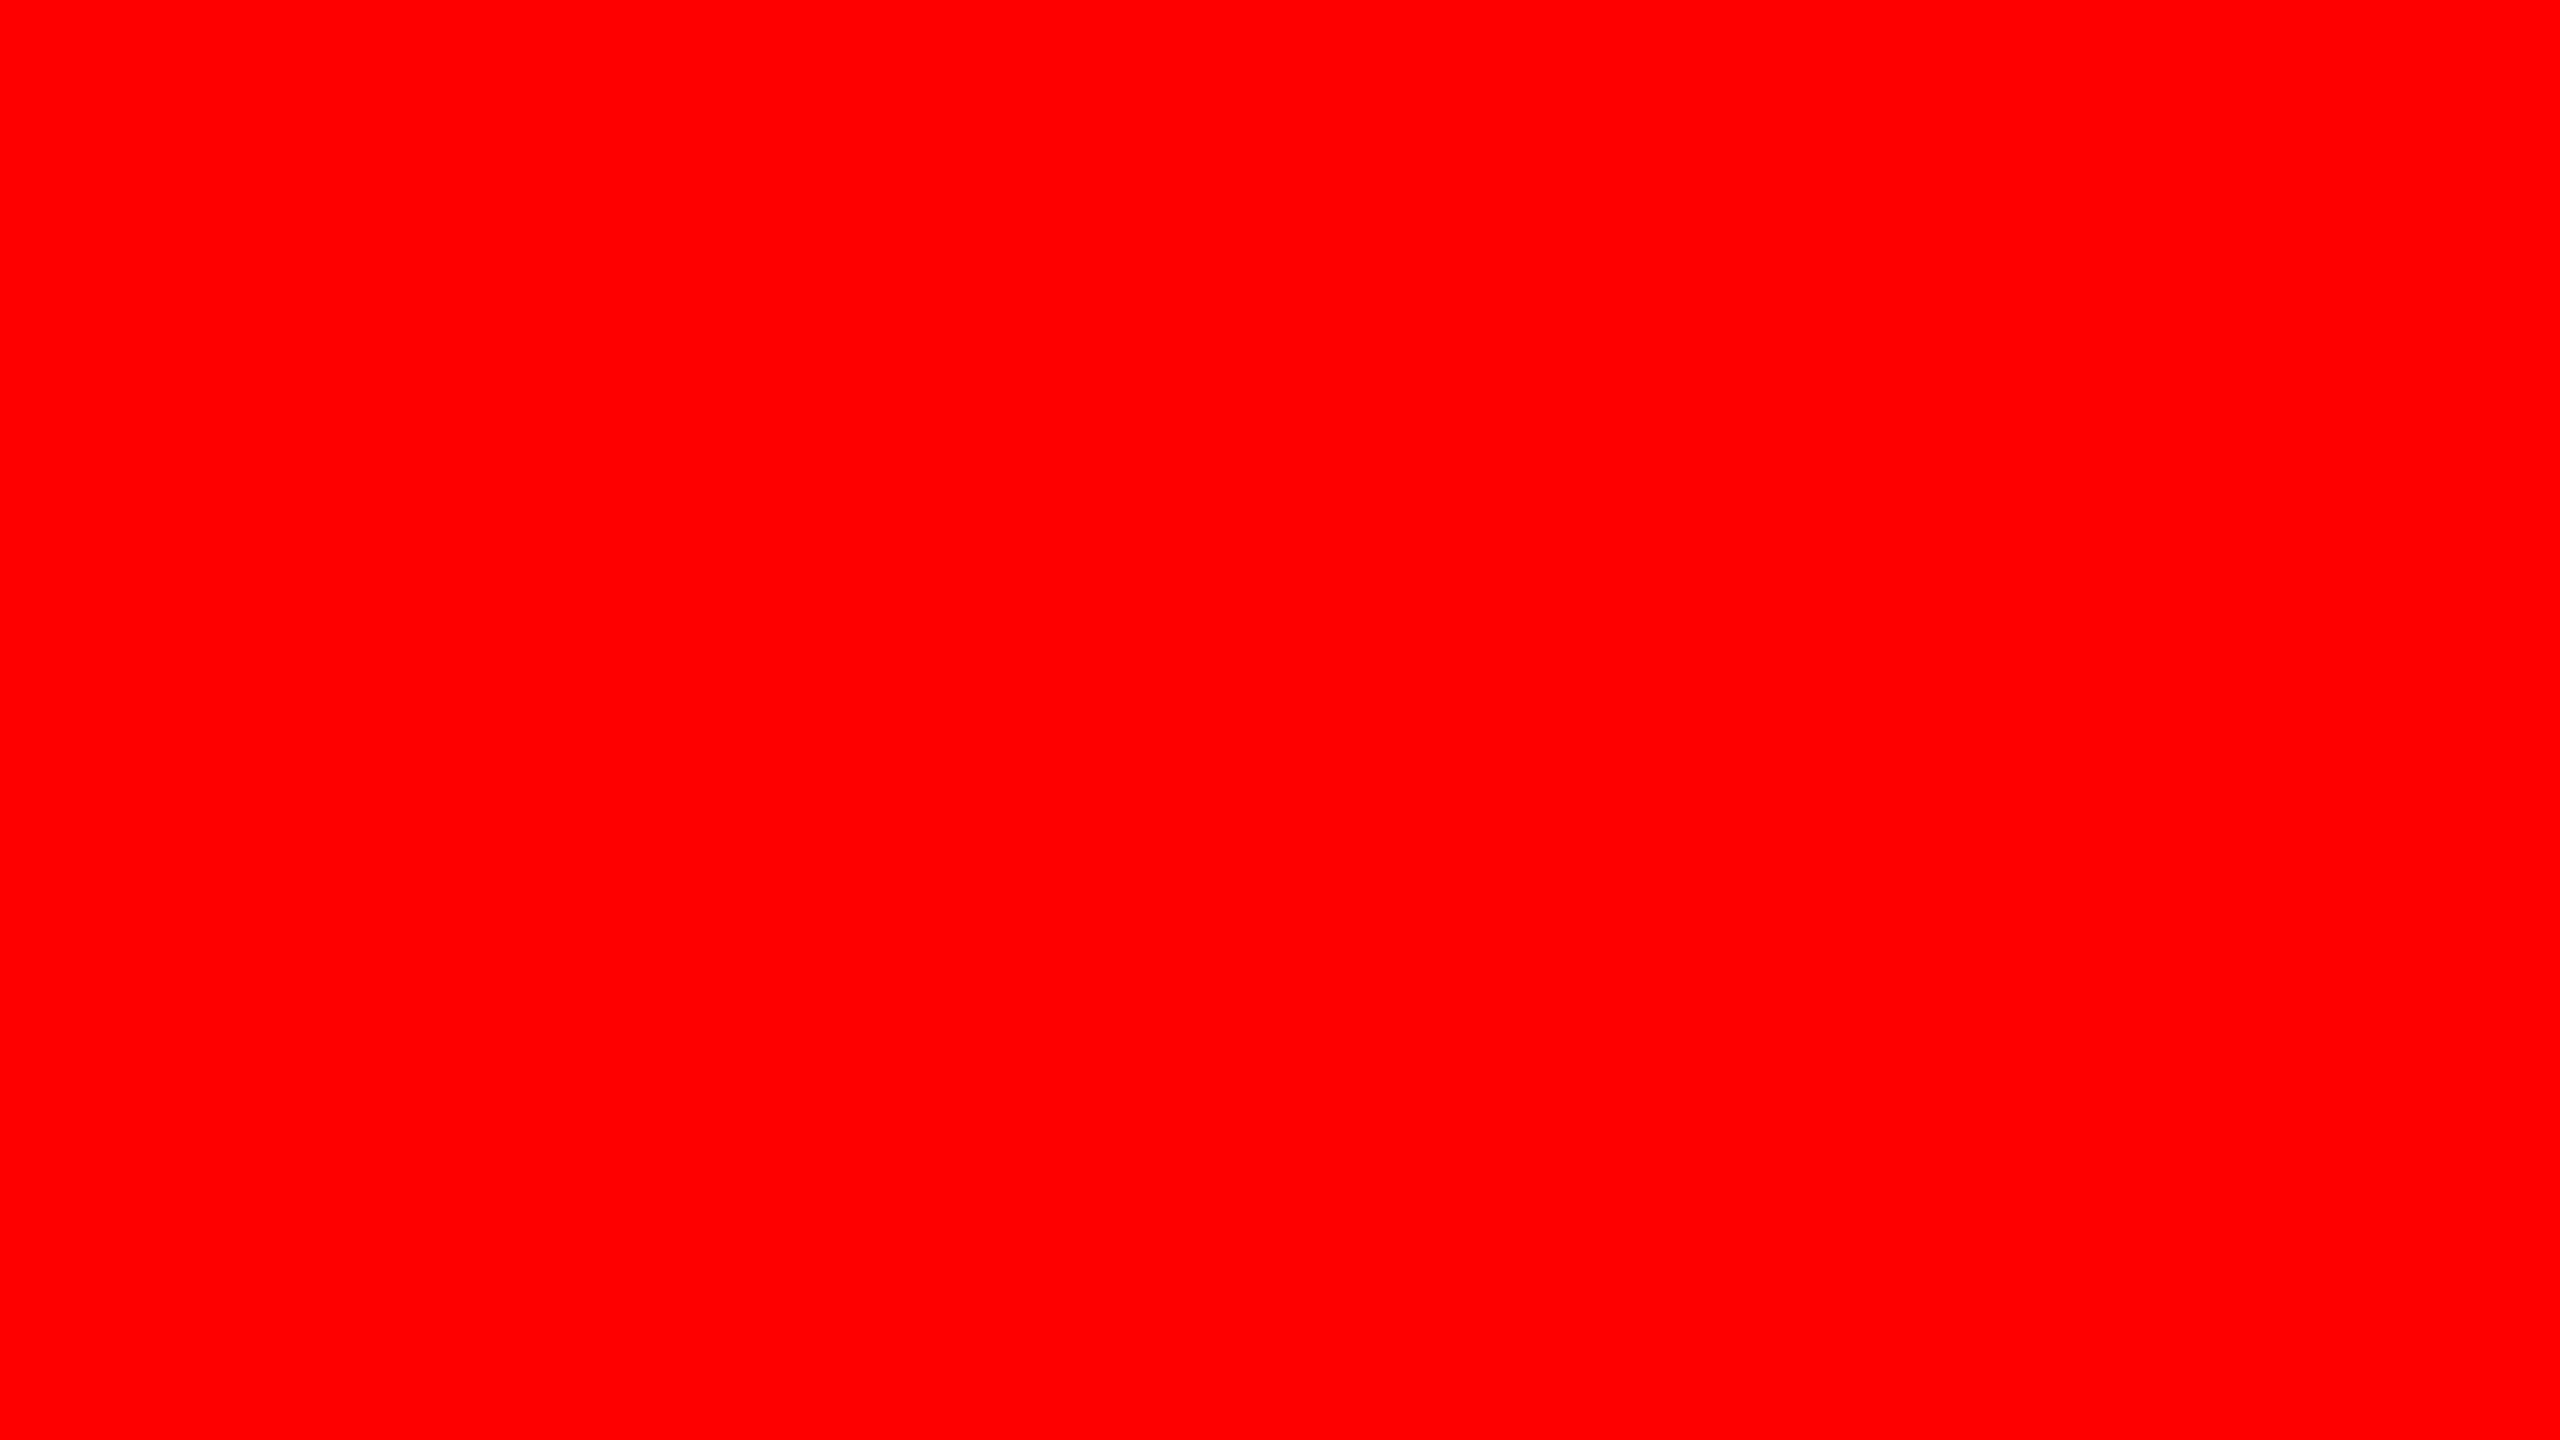 2560x1440 Red Solid Color Background